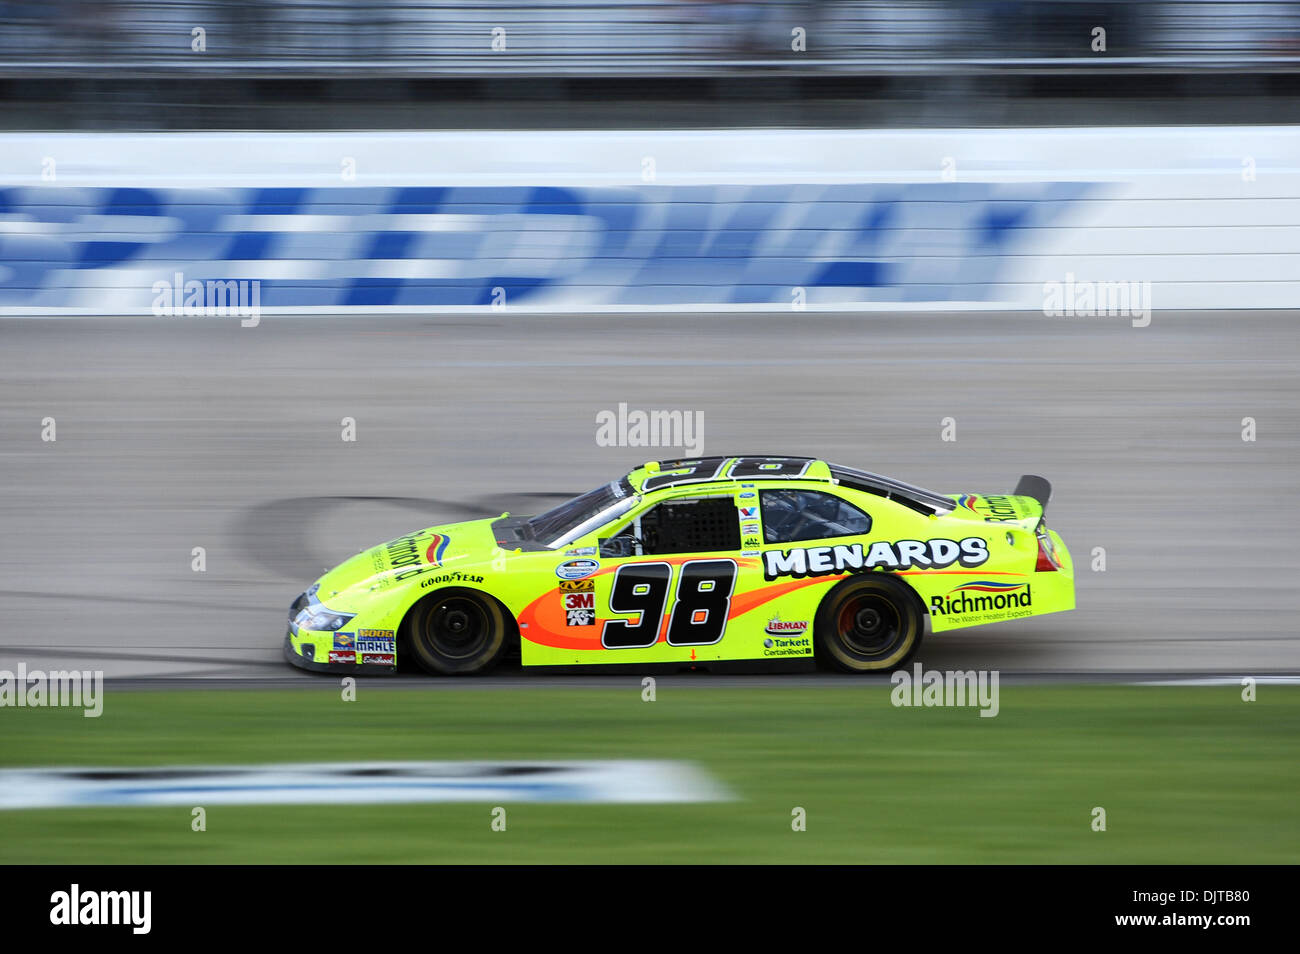 Menards Stock Photos & Menards Stock Images - Alamy